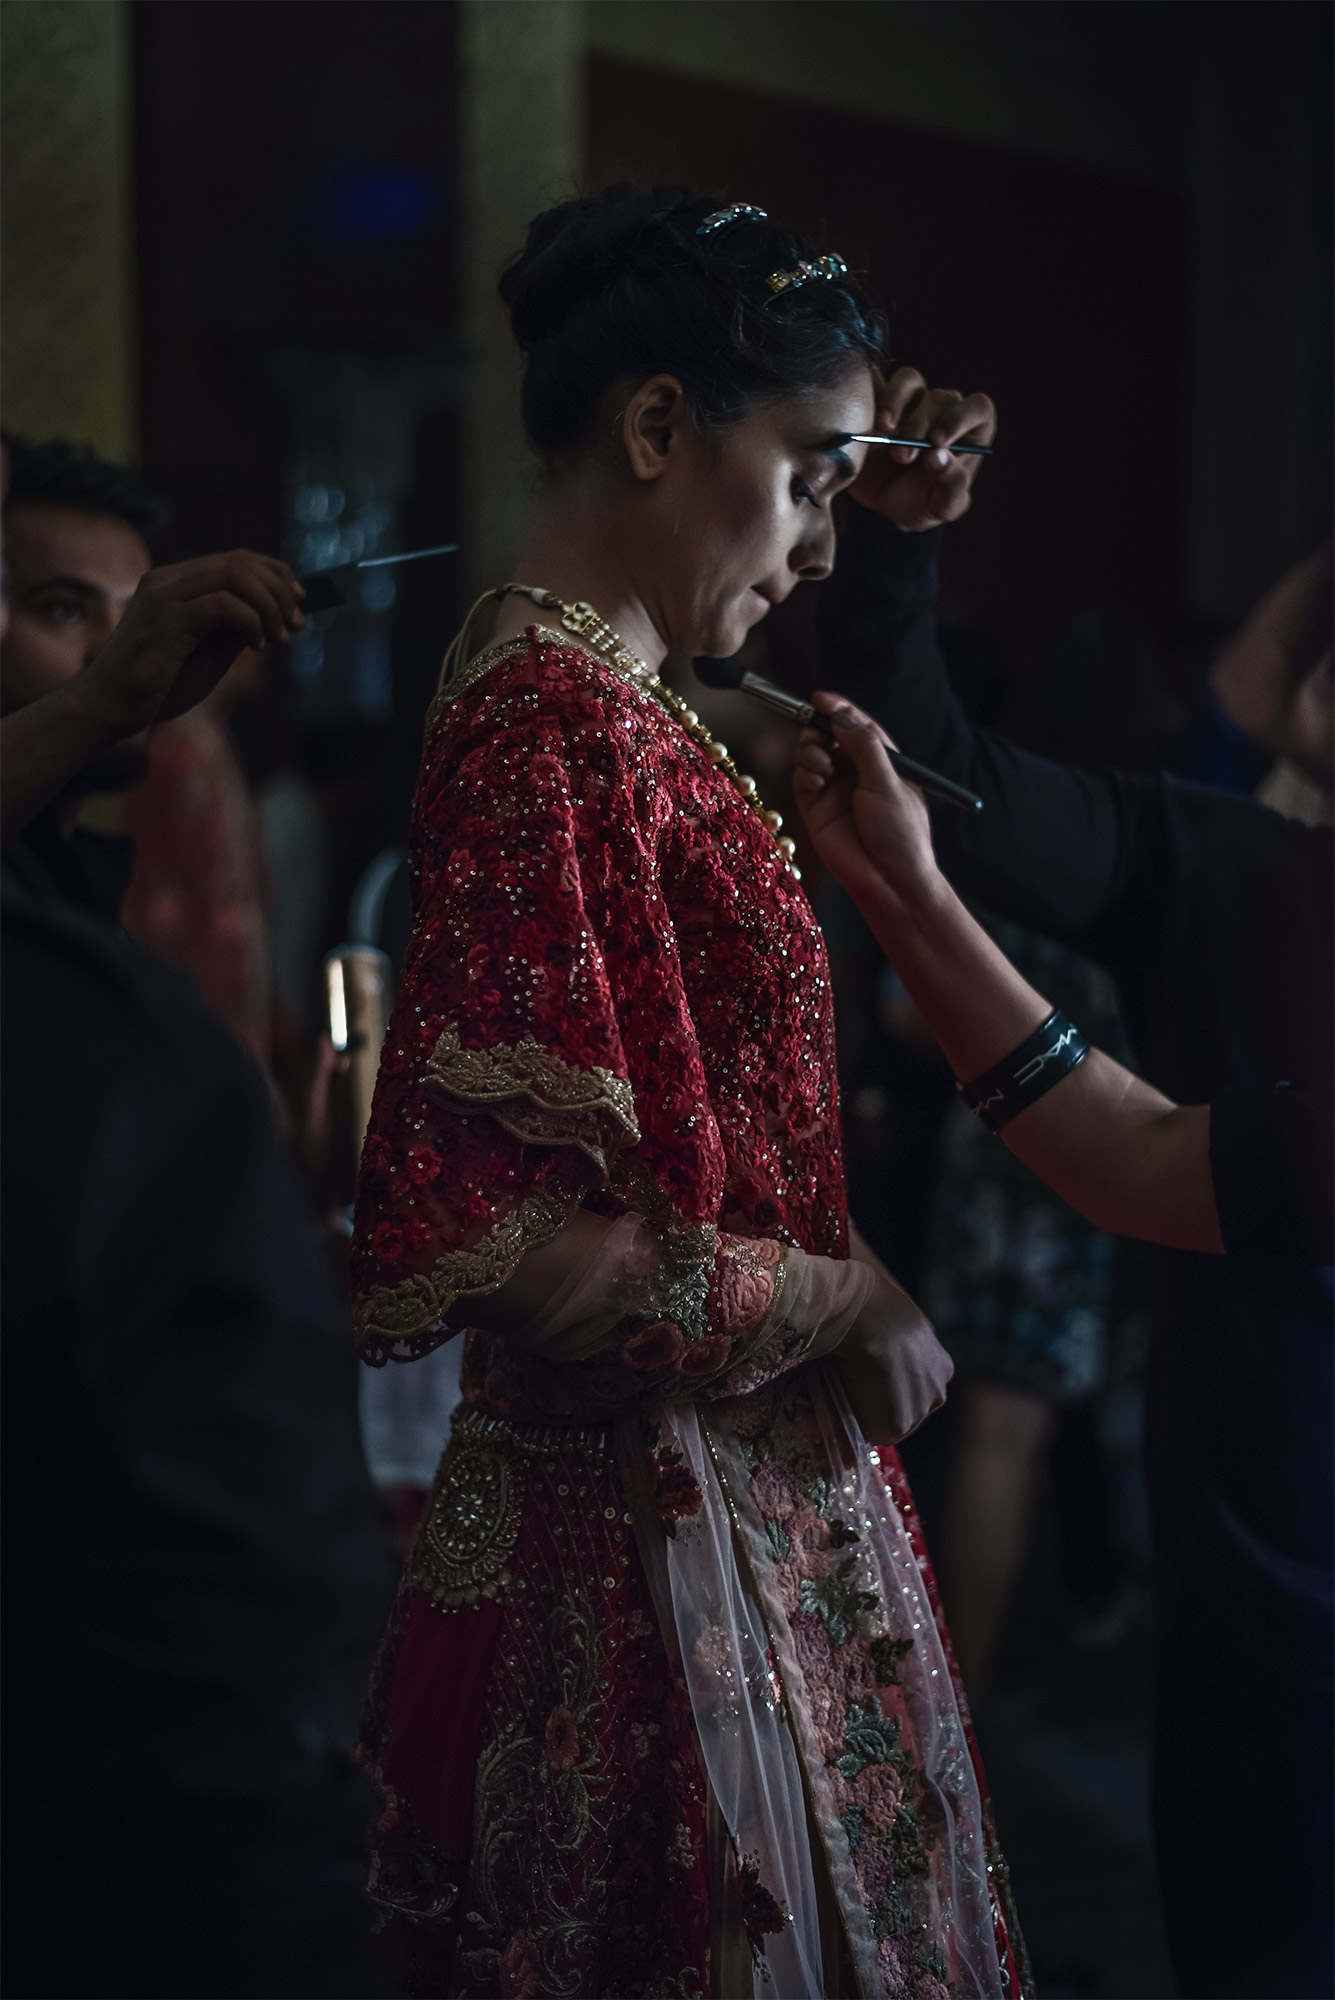 M.A.C. Backstage FDCI India Couture Week 2016 Photo by RAWKY KSH 36